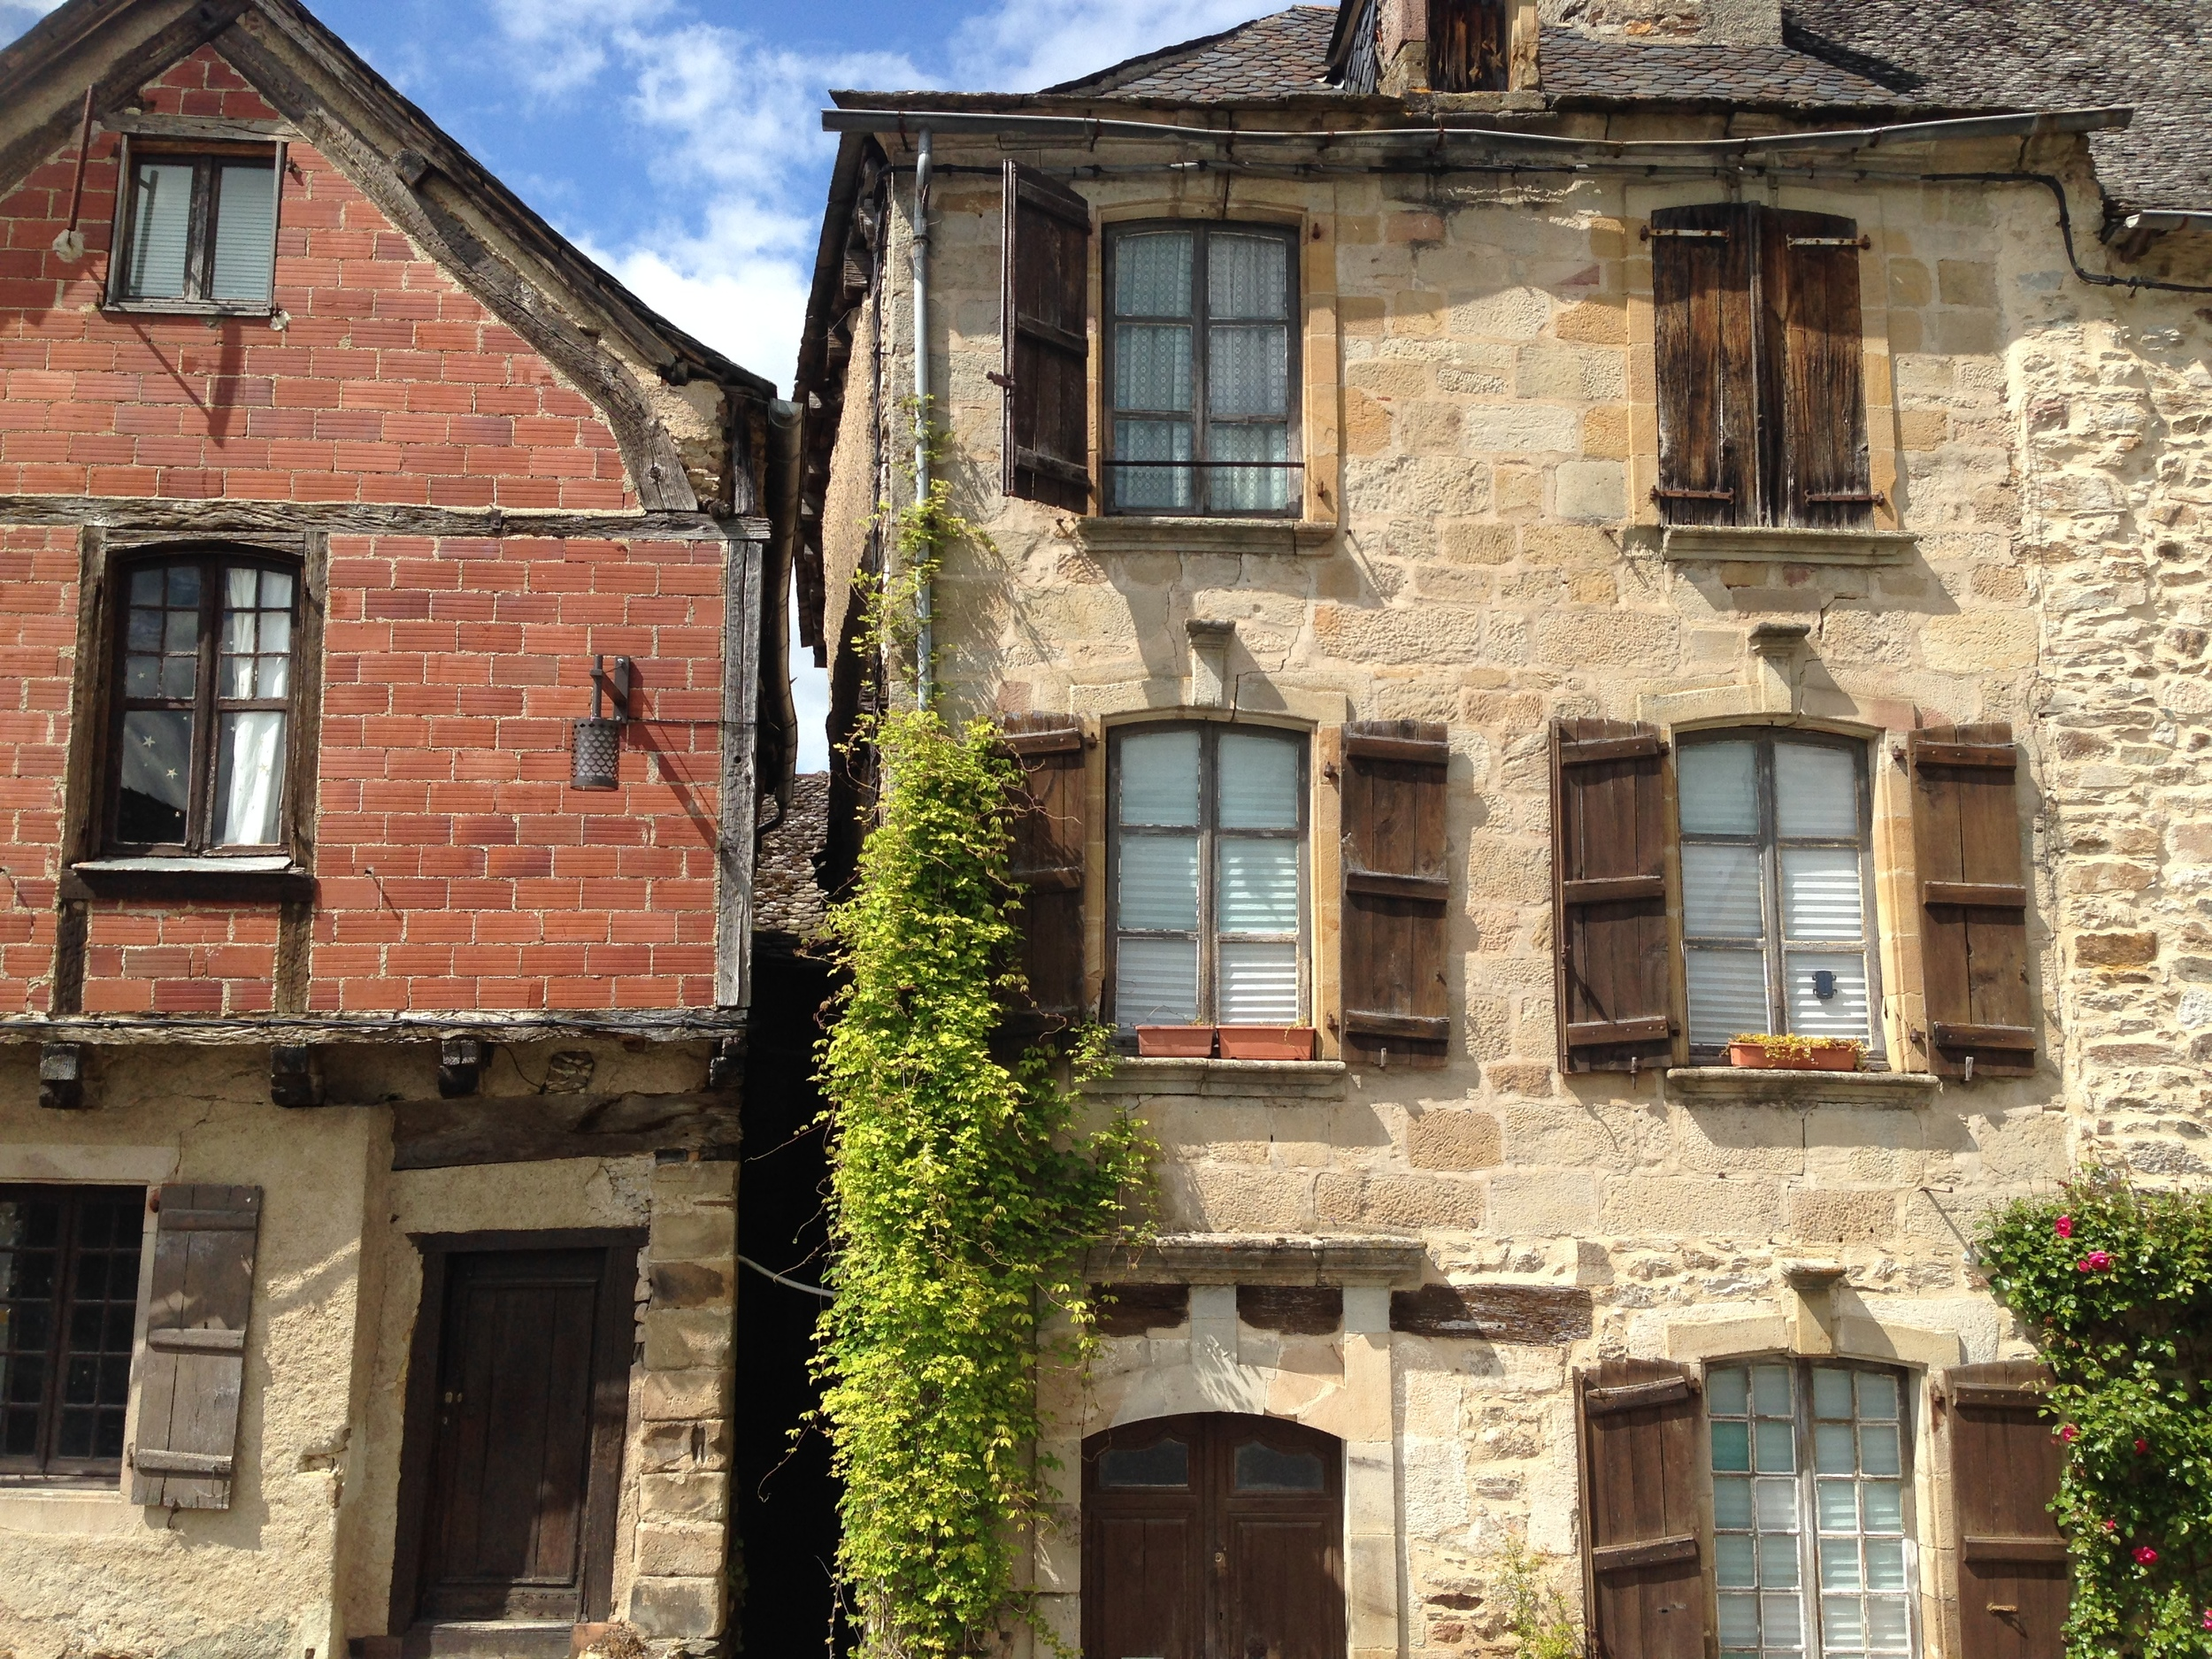 Triple story townhouse, Najac